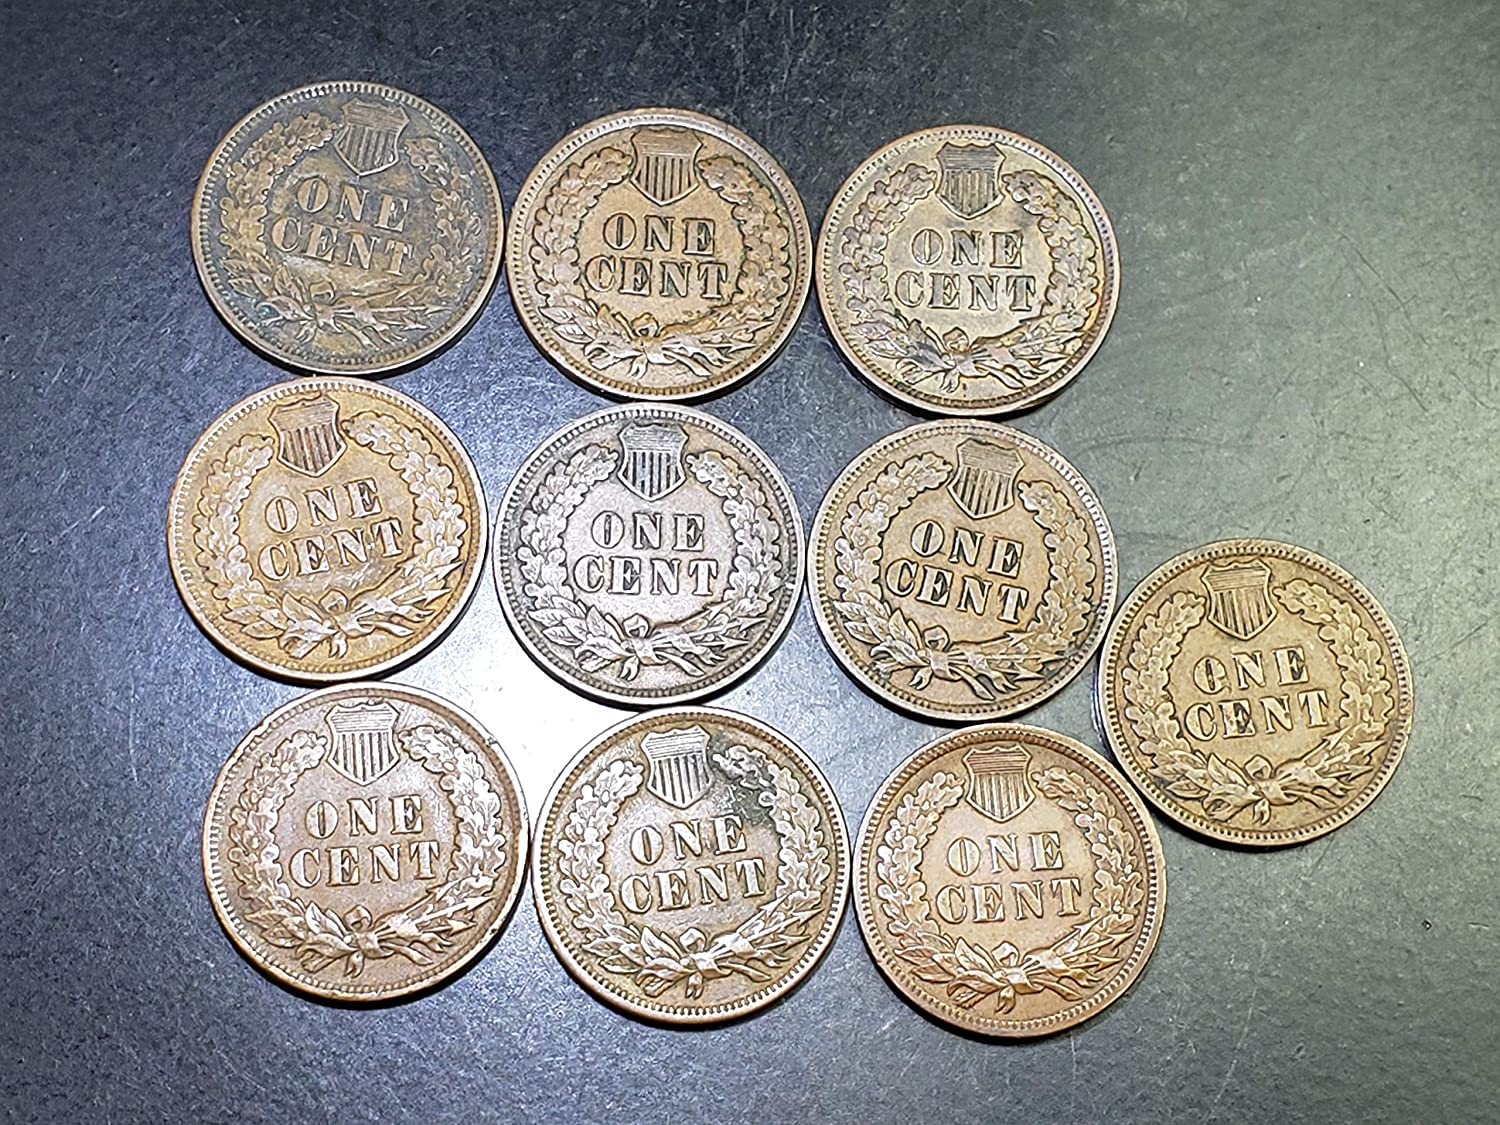 US Indian Head Cents Circulated Price per Each Coin 1906 or 1907 or 1908 photos